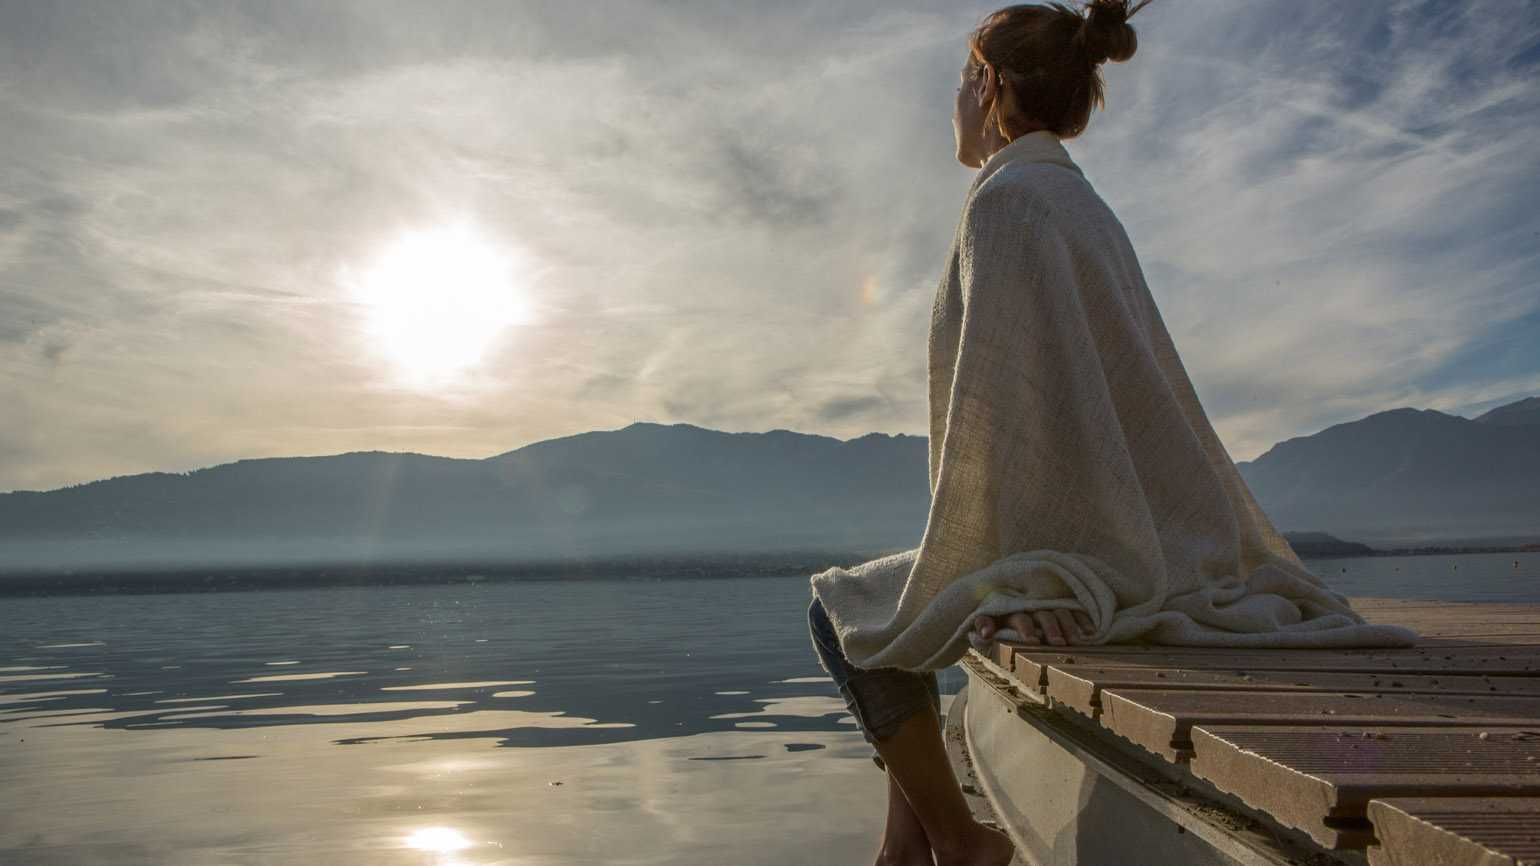 A woman sitting on the dock in deep reflection as the sun rises.